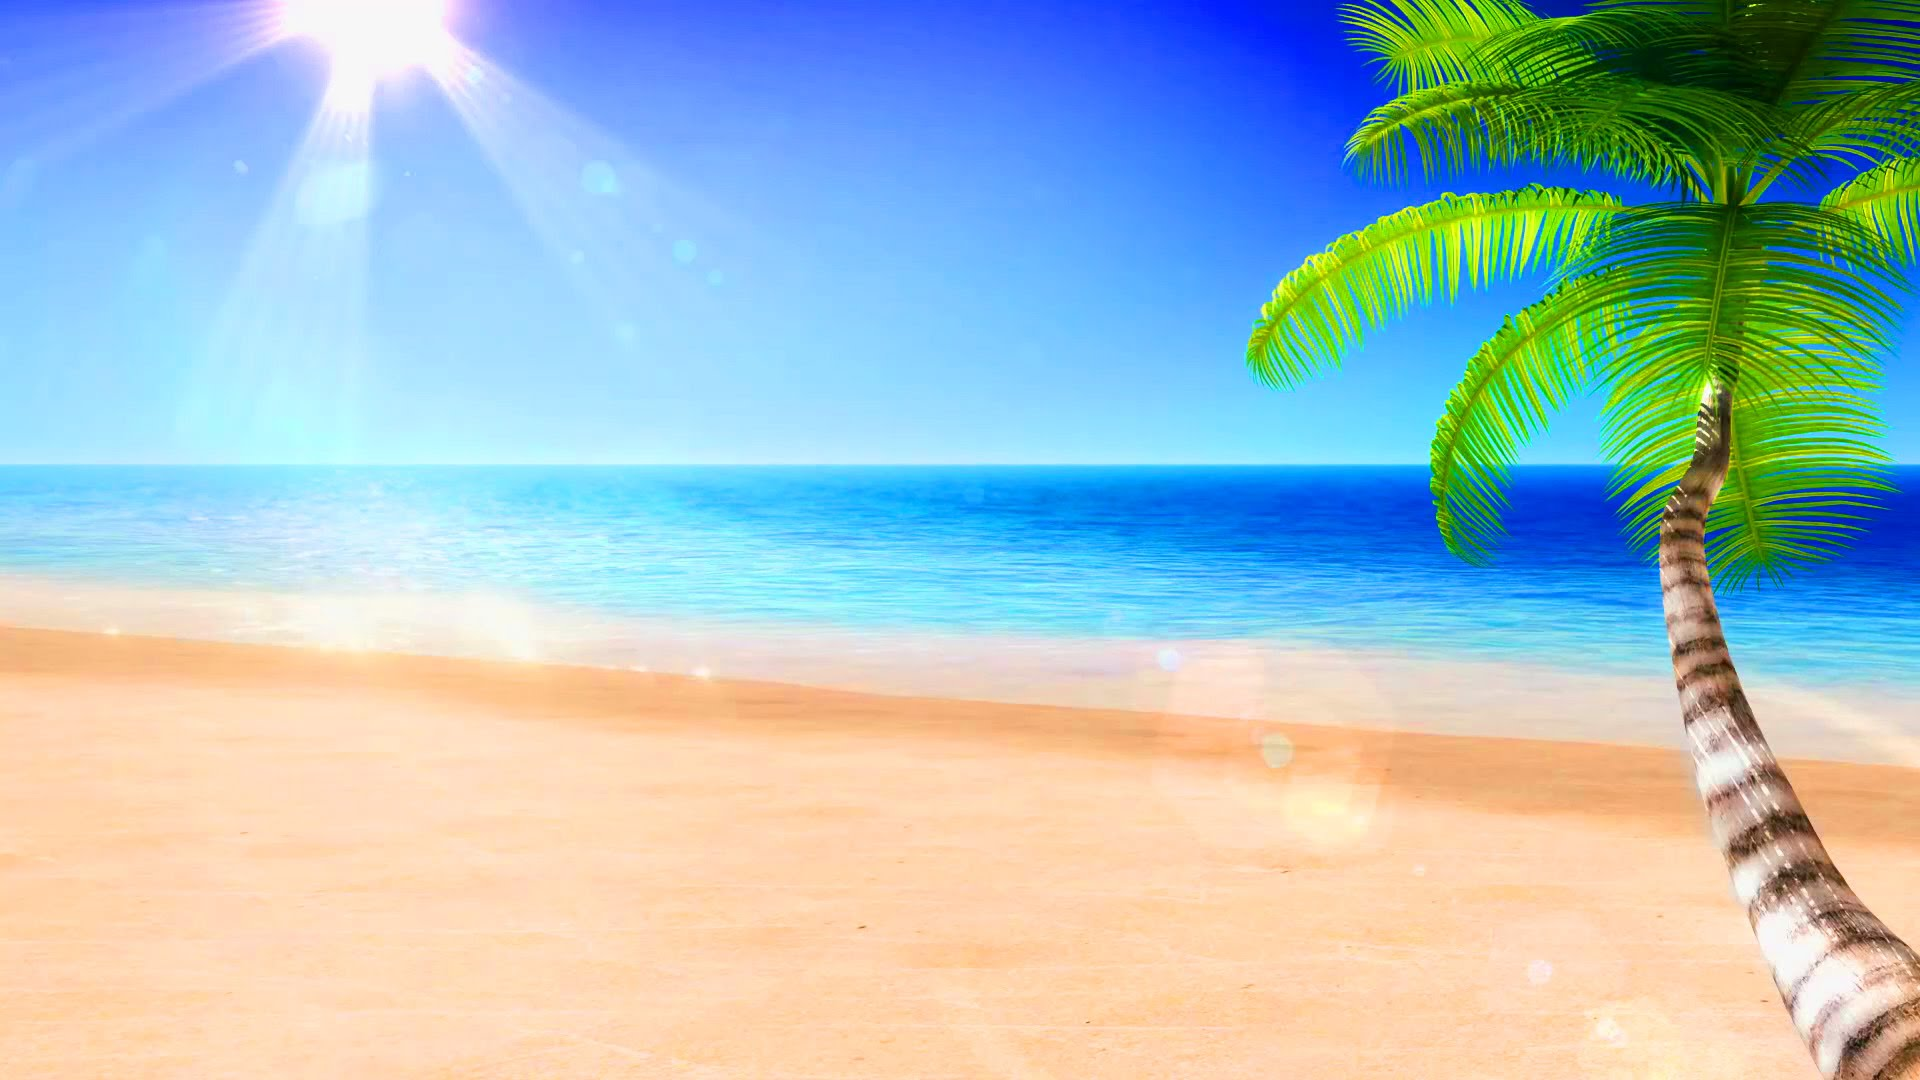 Free download Tropical Beach Wallpapers Pictures Images.